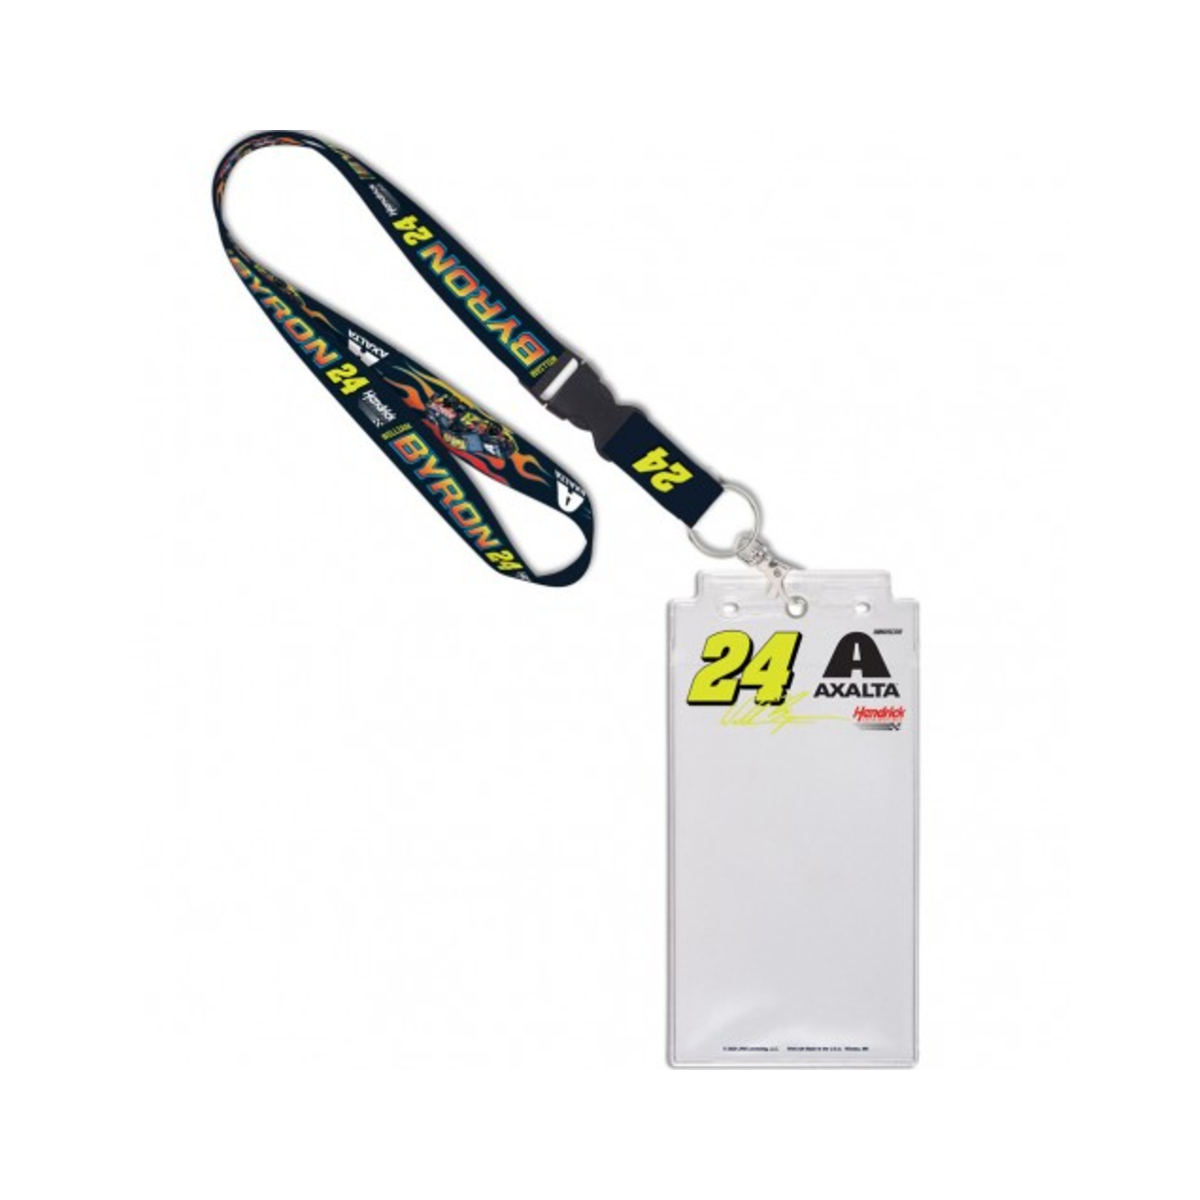 William Byron #24 2020 Axalta Credential Holder with Lanyard